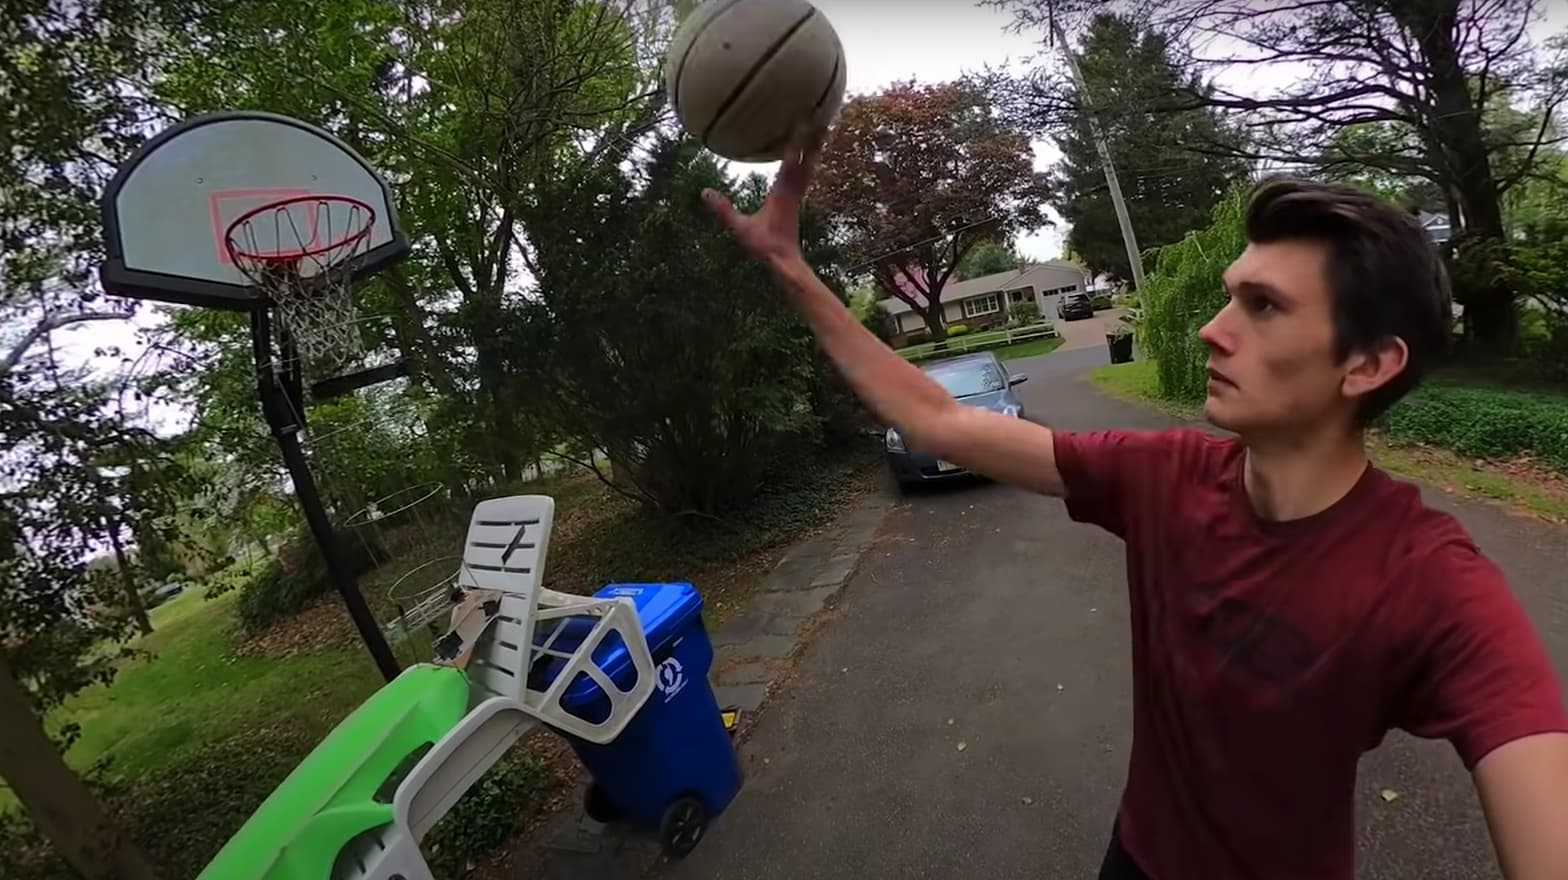 This outdoor Rube Goldberg Machine goes around my entire yard, and swishes a basketball shot after 70 steps. This video was filmed in one take, meaning there are absolutely no hidden cuts or edits. The machine took a month to build and another month to successfully work, so please share this with anyone who needs some entertainment during these strange times!